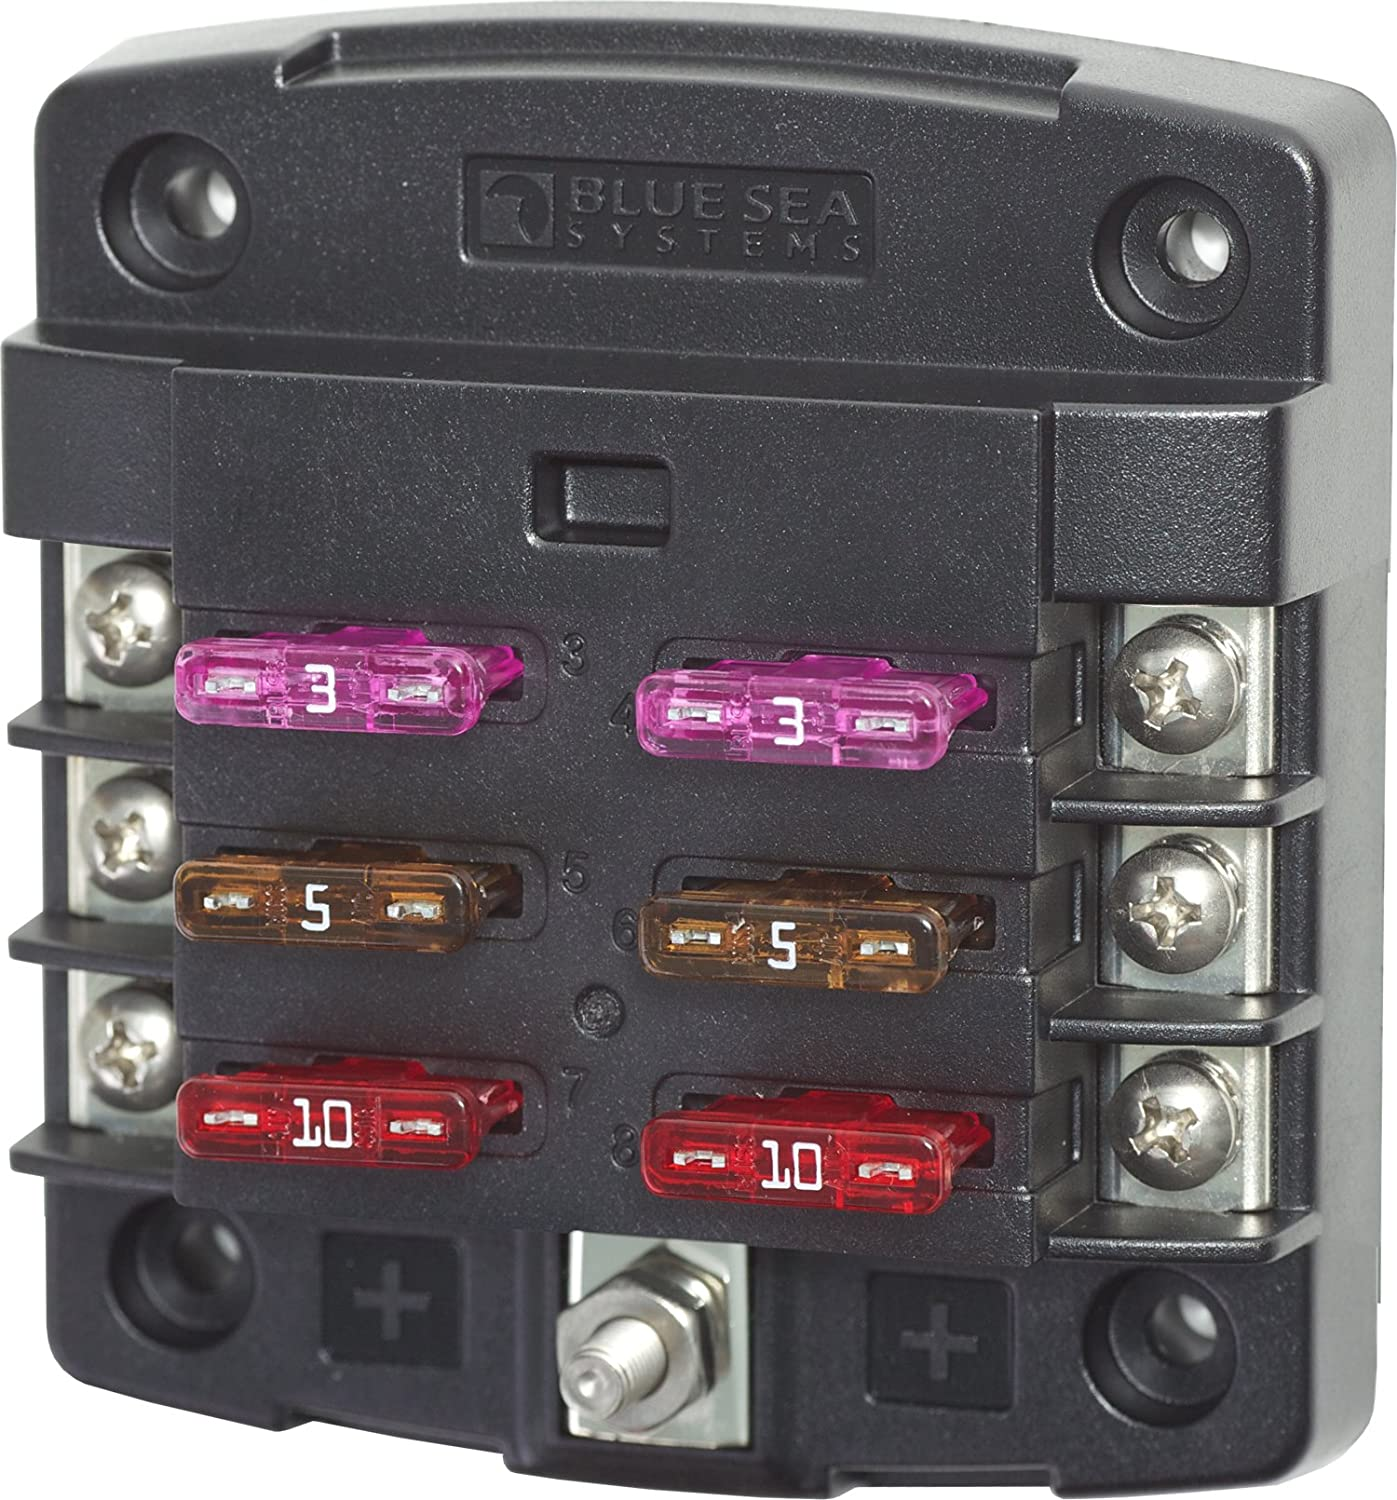 Blue Sea Systems St Blade 12 Circuit Fuse Block 12v 1 X 4 Way Box Holder Marine Sports Outdoors